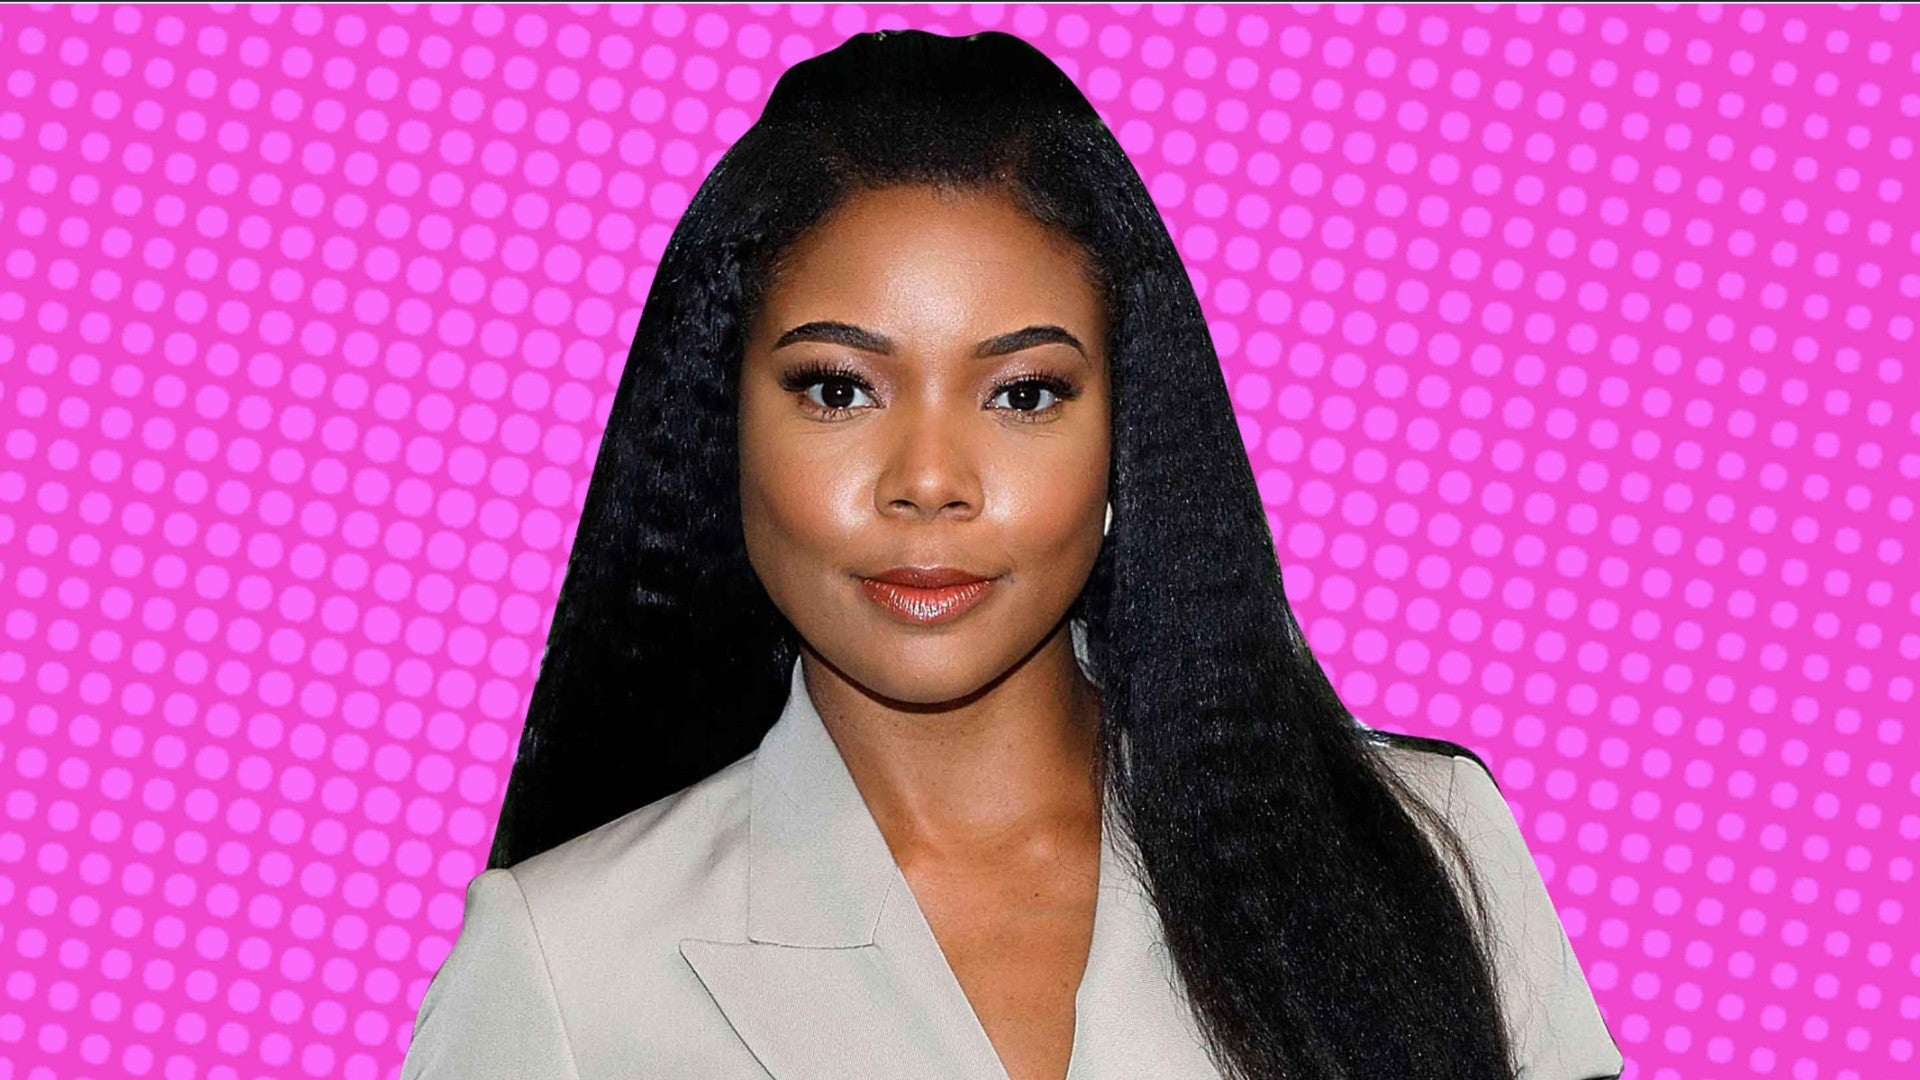 Gabrielle Union Shows Off Her Natural Curls